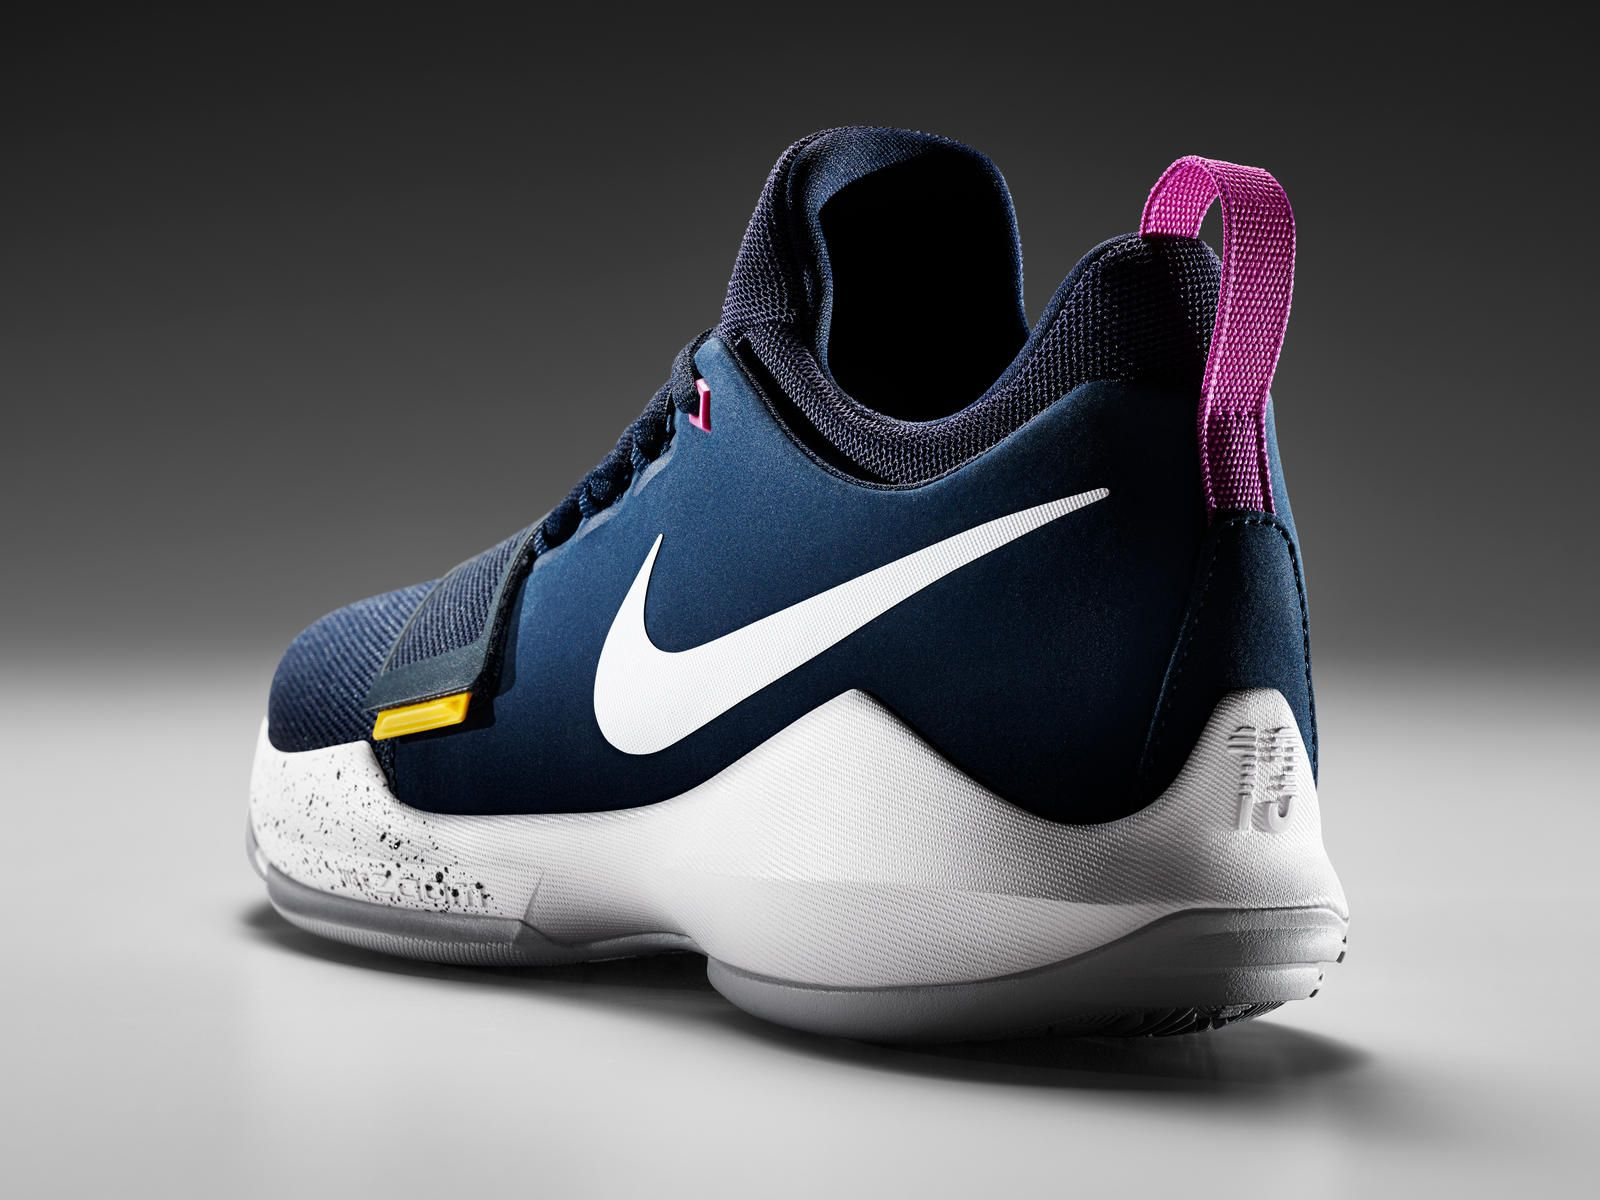 super popular f5e03 dad5a 10 Things To Know About the PG1 - Nike News